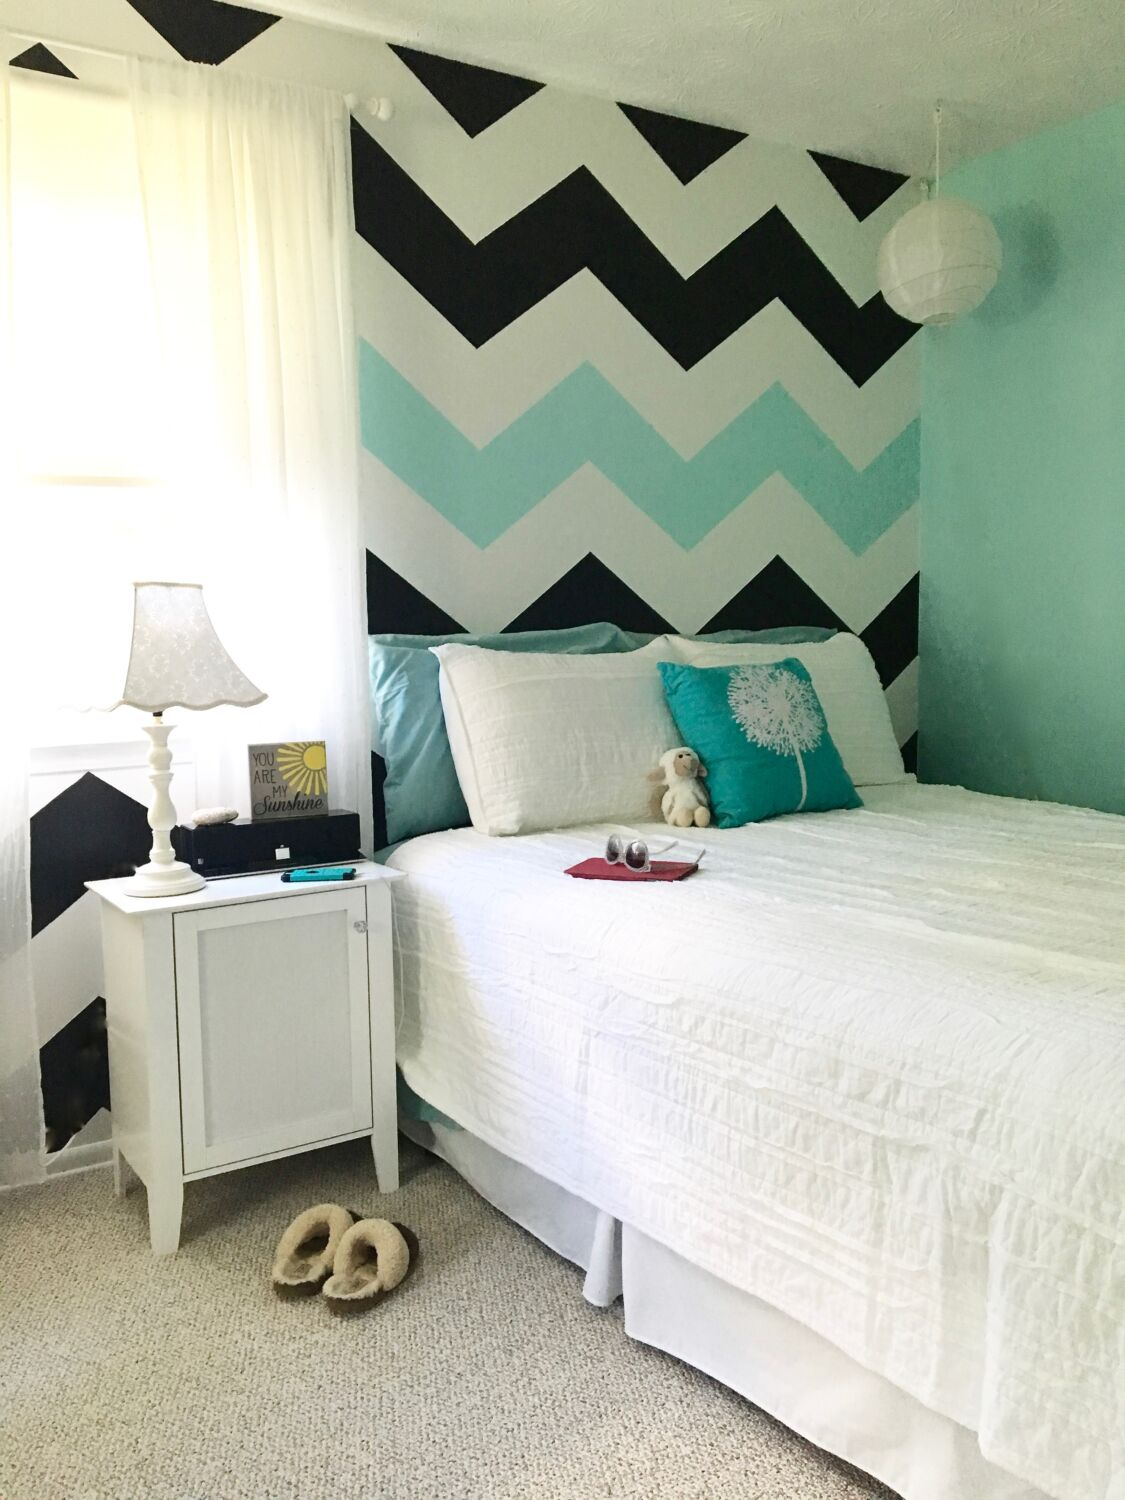 How-to Paint Chevron Stripes